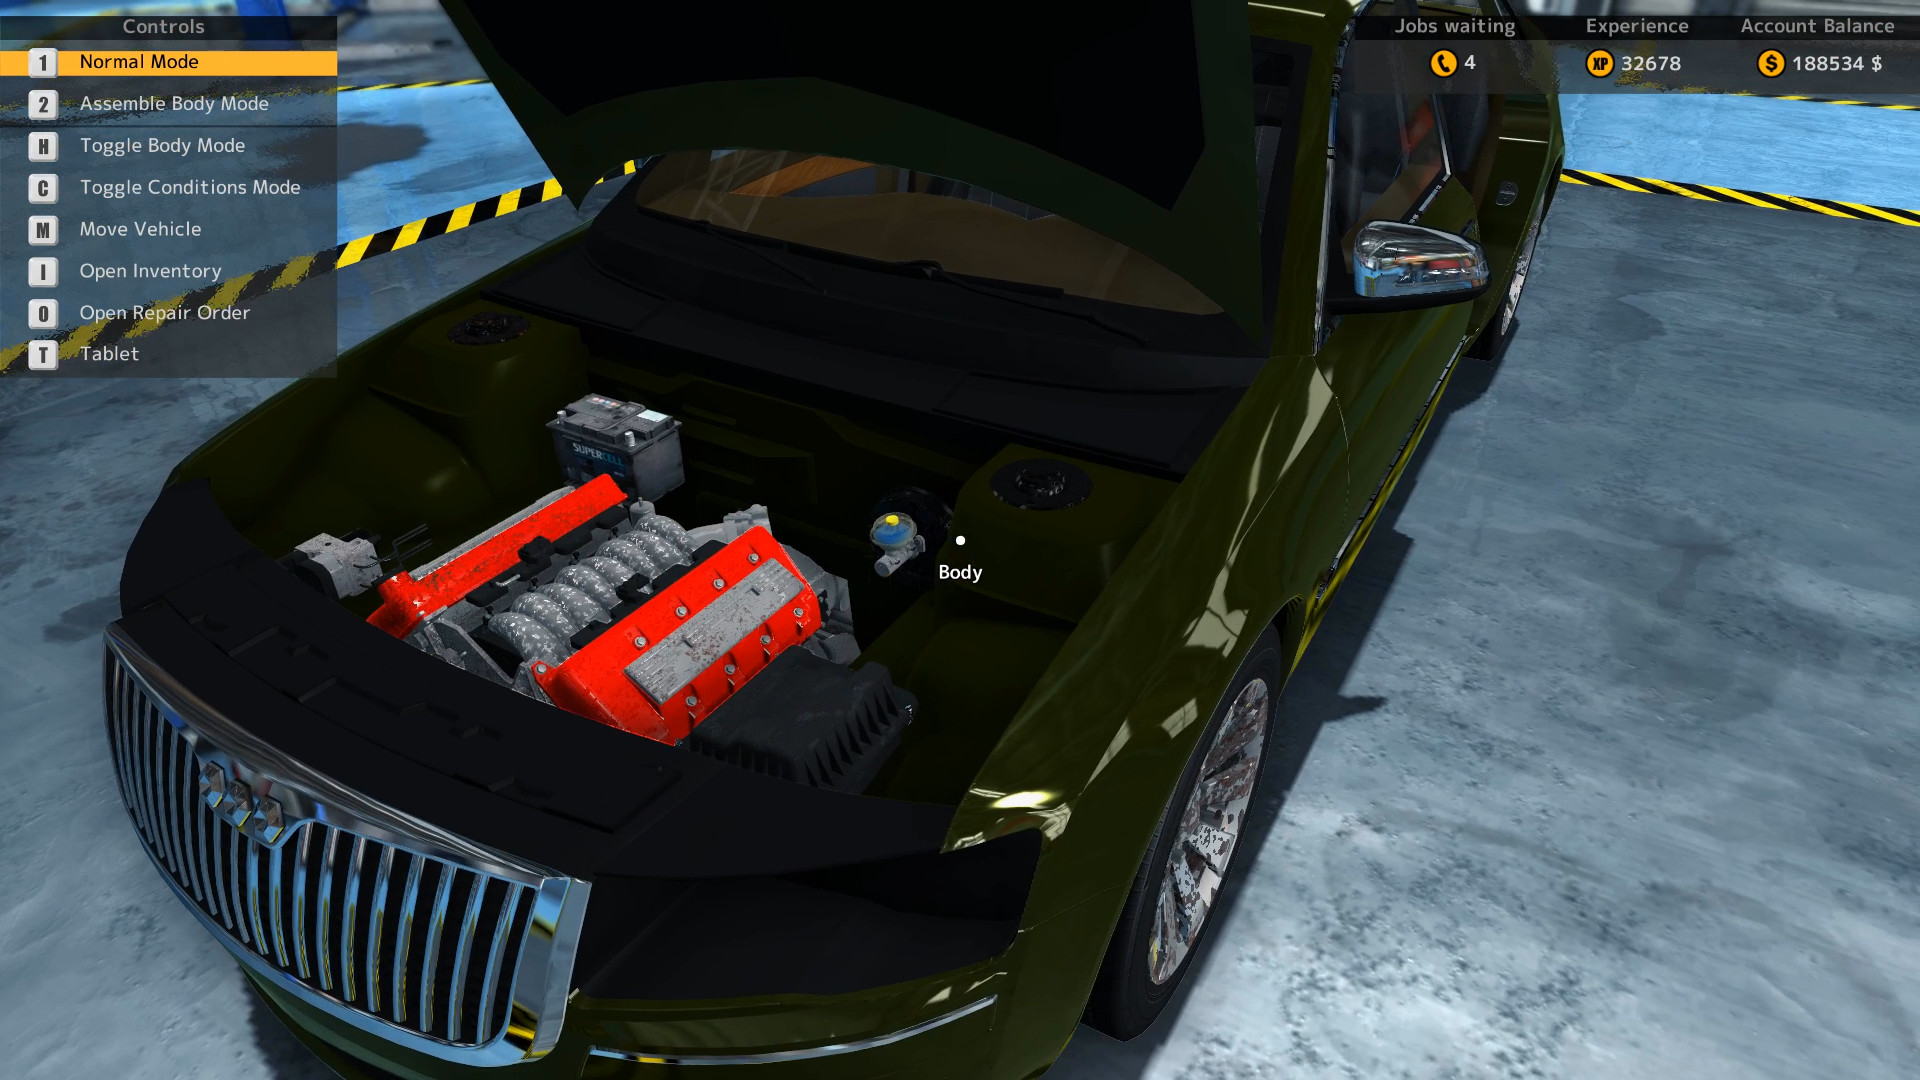 Only minor damage is visible in this engine compartment view of the Mayen M8 from Car Mechanic Simulator 2015.